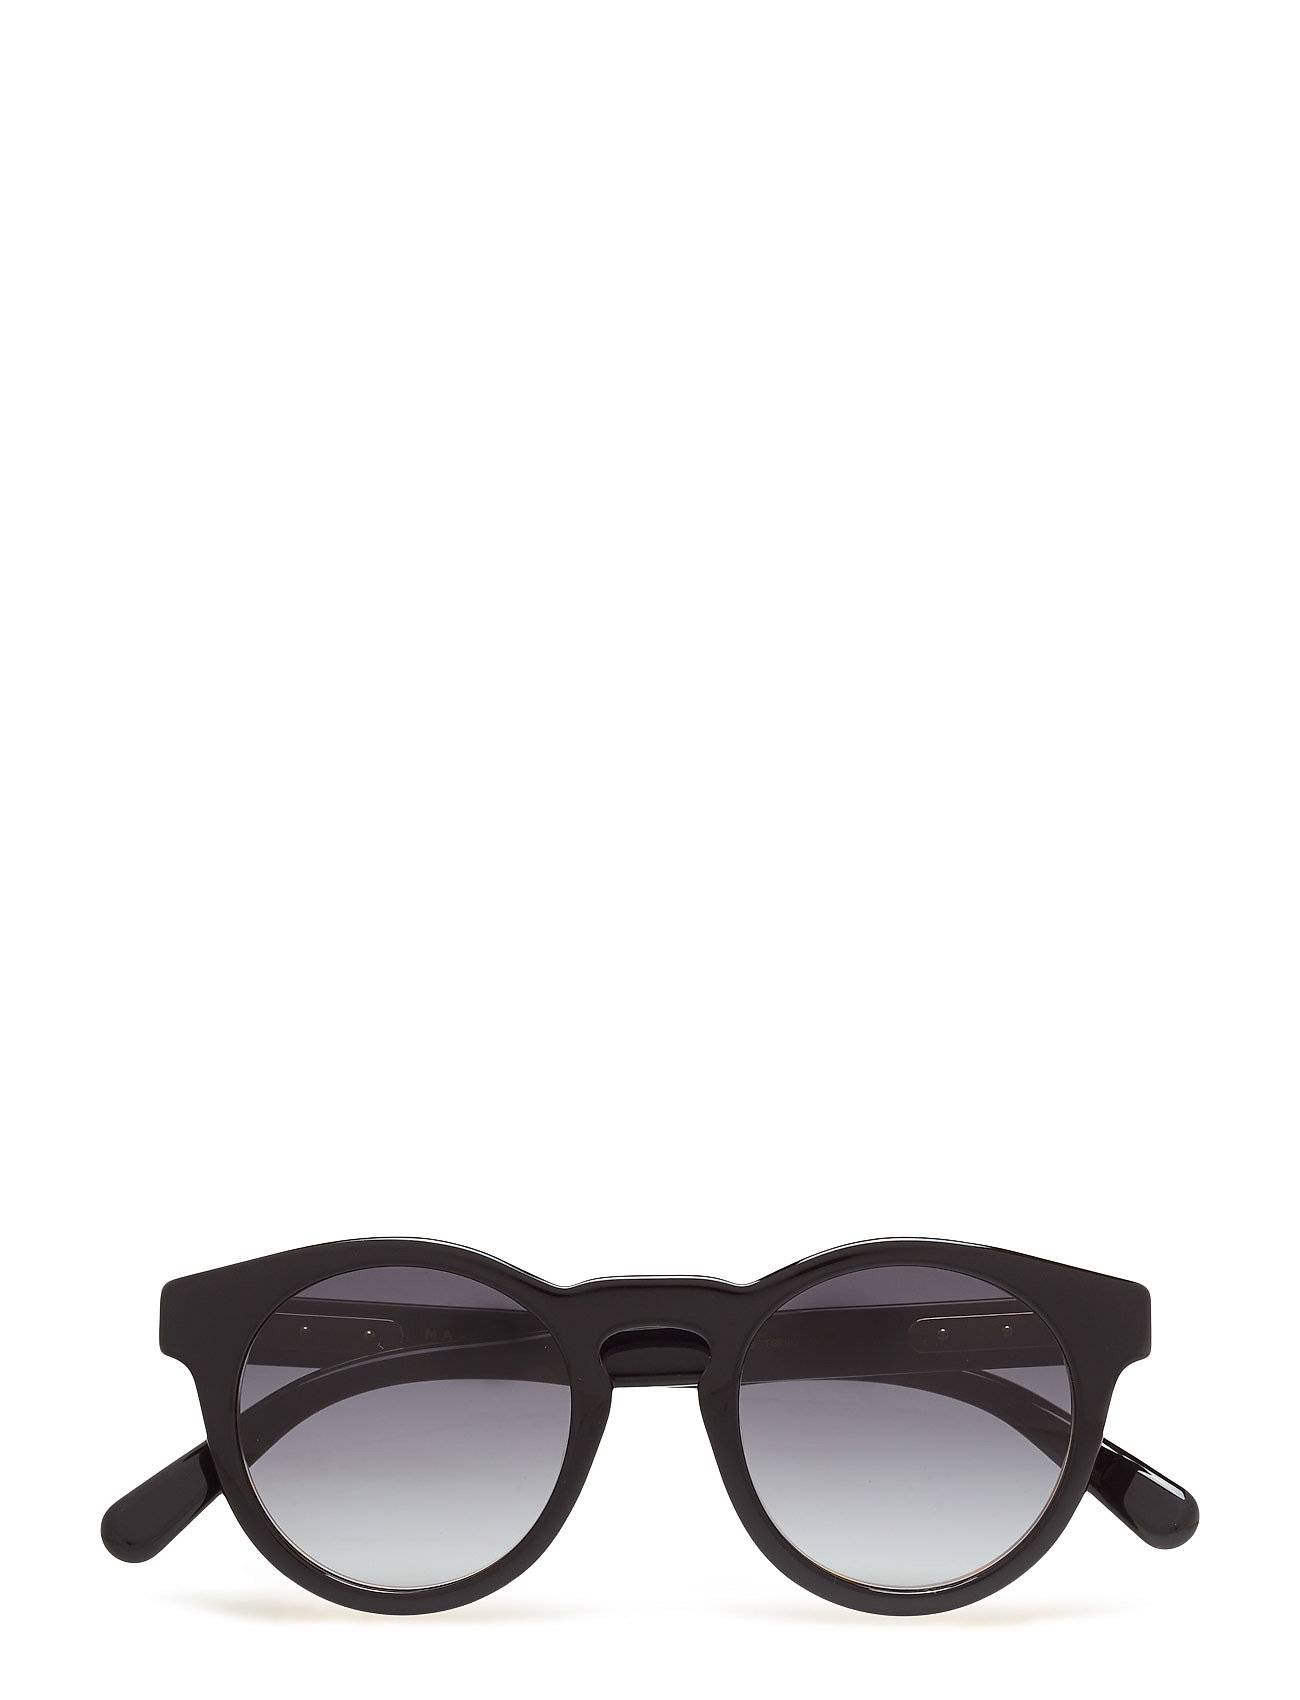 Image of Marc Jacobs Sunglasses Mj 628/S Aurinkolasit Musta Marc Jacobs Sunglasses